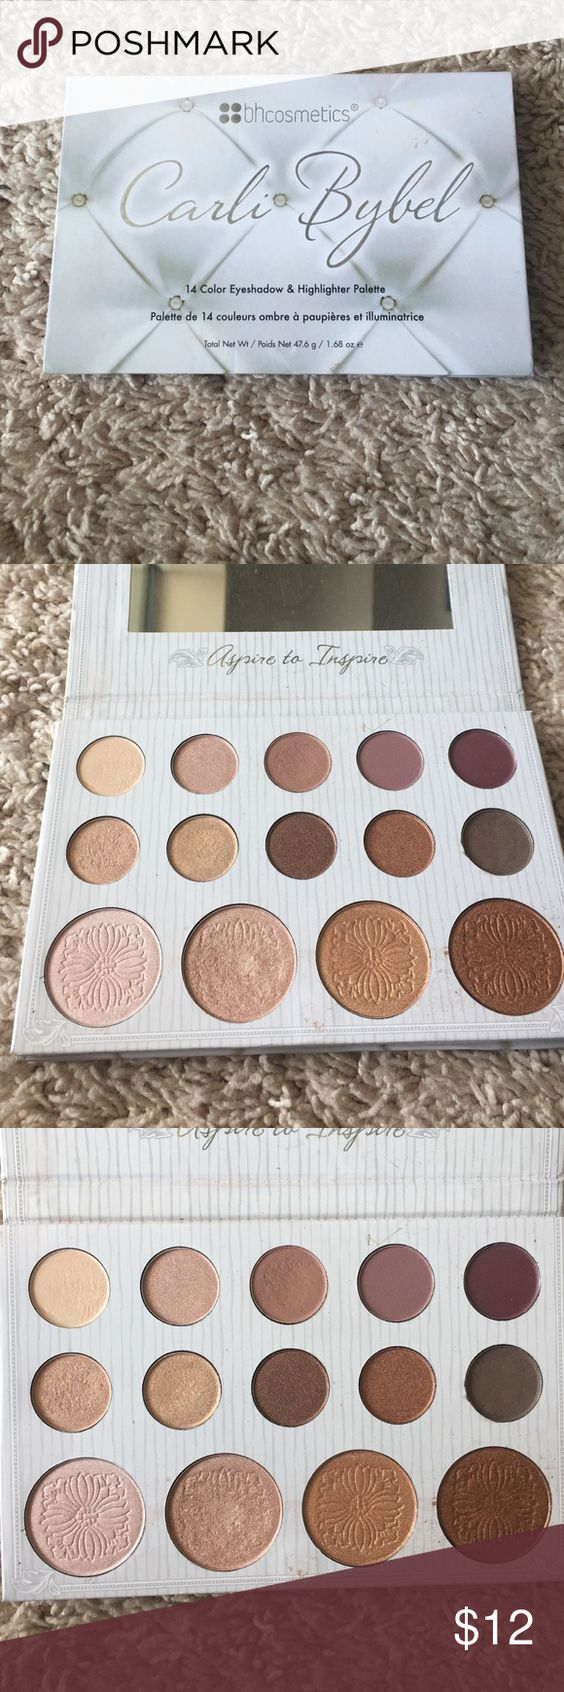 bhcosmetics Carli Bybel palette I've only used this palette 2 maybe 3 times. I really enjoyed it, I just don't find myself reaching for it as much as I would like. bhcosmetics  Makeup